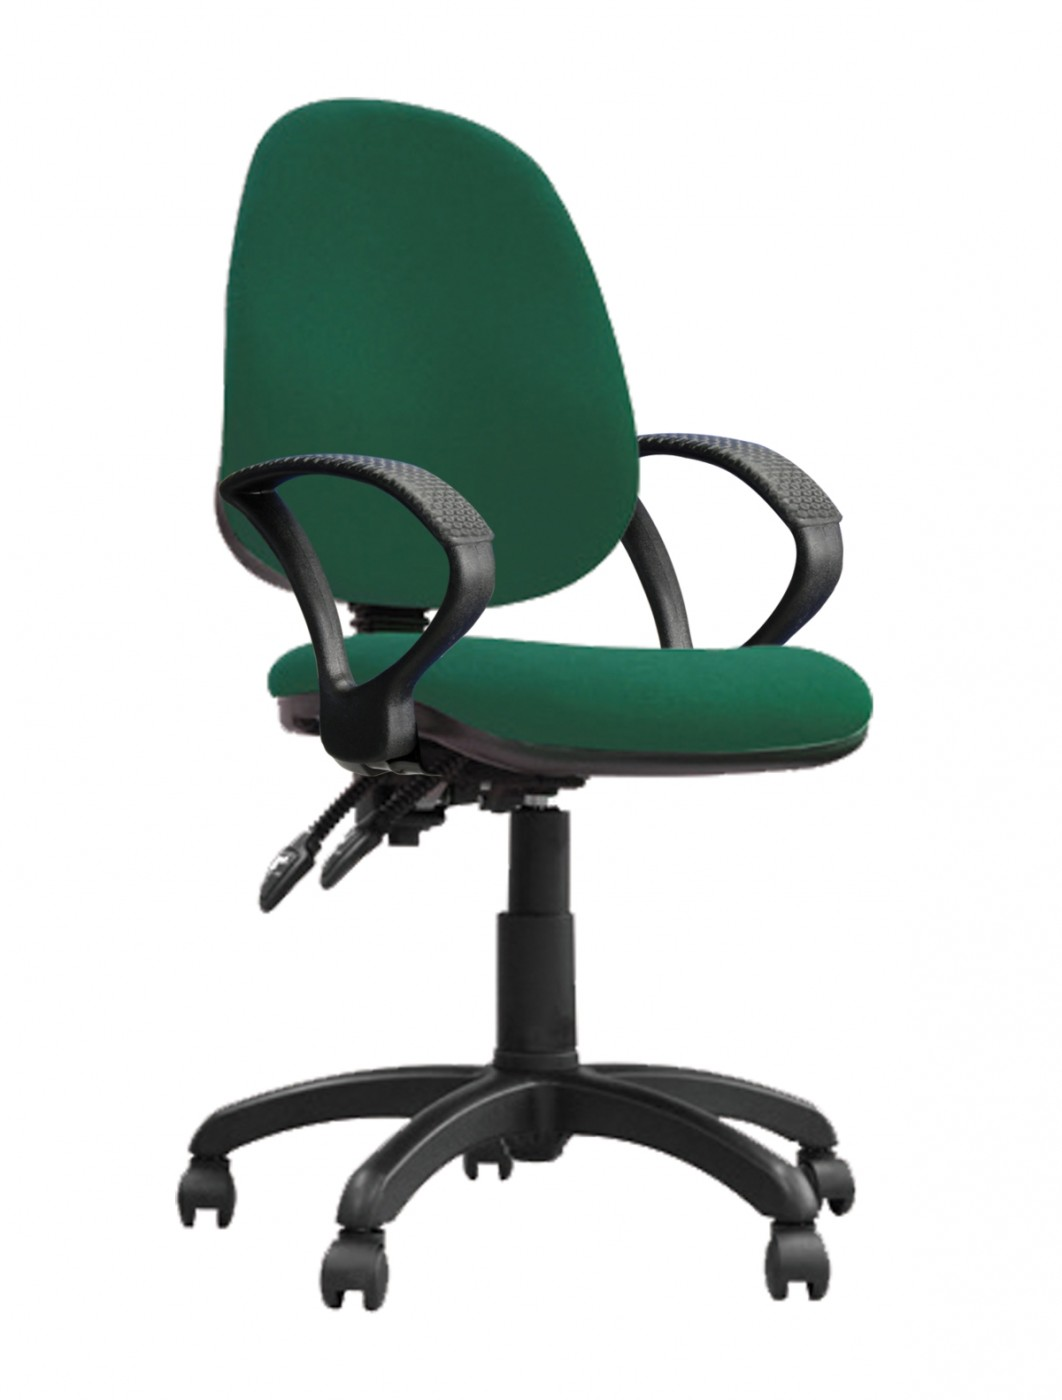 office chairs uk indoor swing chair eliza tinsley java 200 high back operator bcf p505 green gn